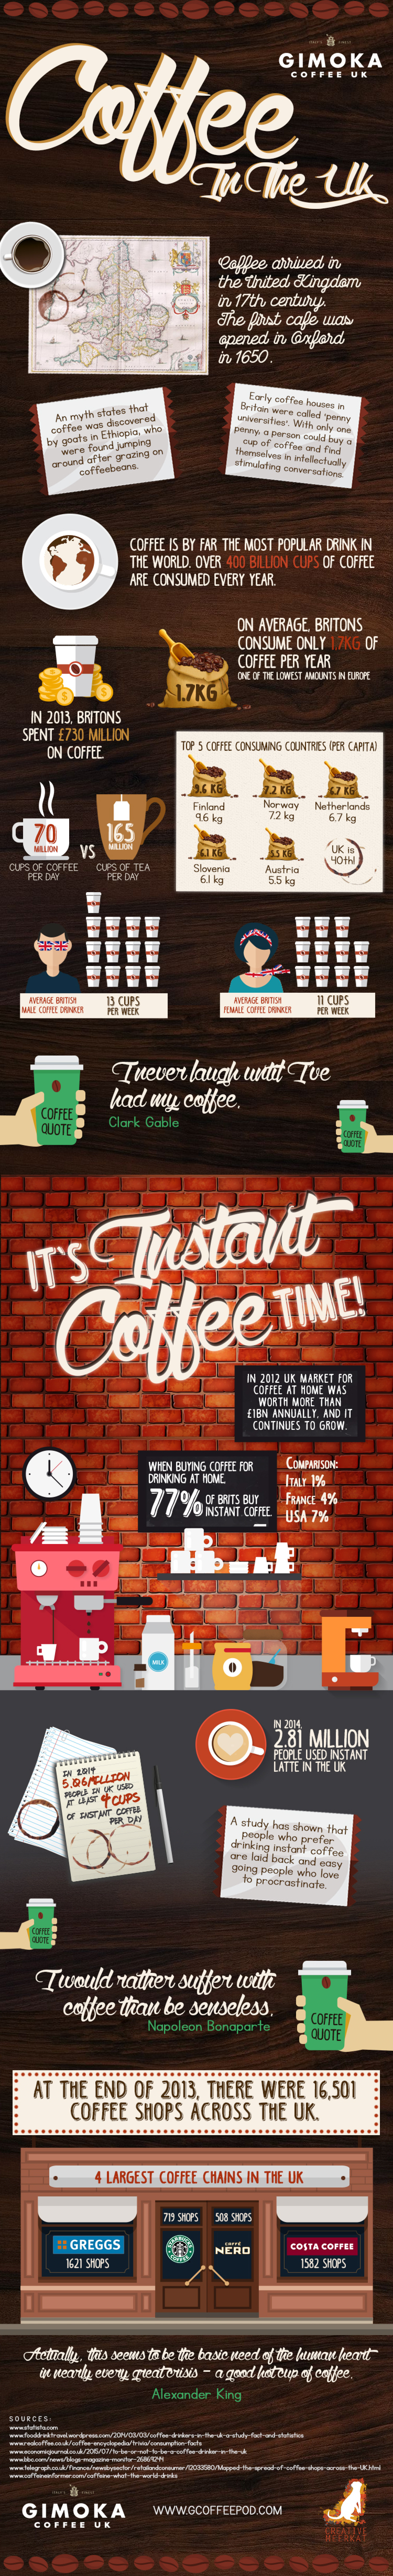 Coffee In The UK Infographic